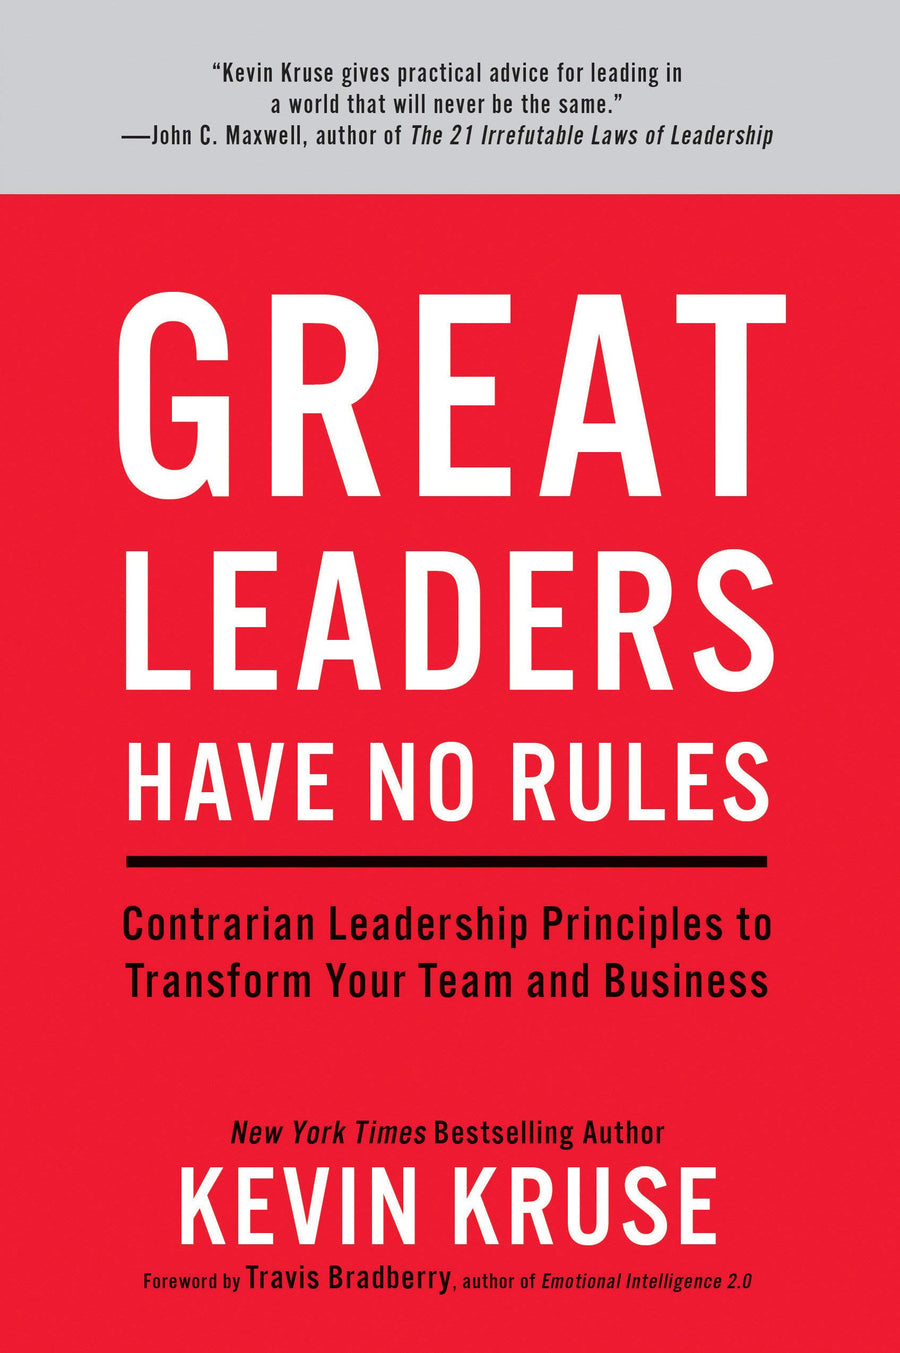 Great Leaders Have No Rules: Contrarian Leadership Principles to Transform Your Team and Business - Leadership Books